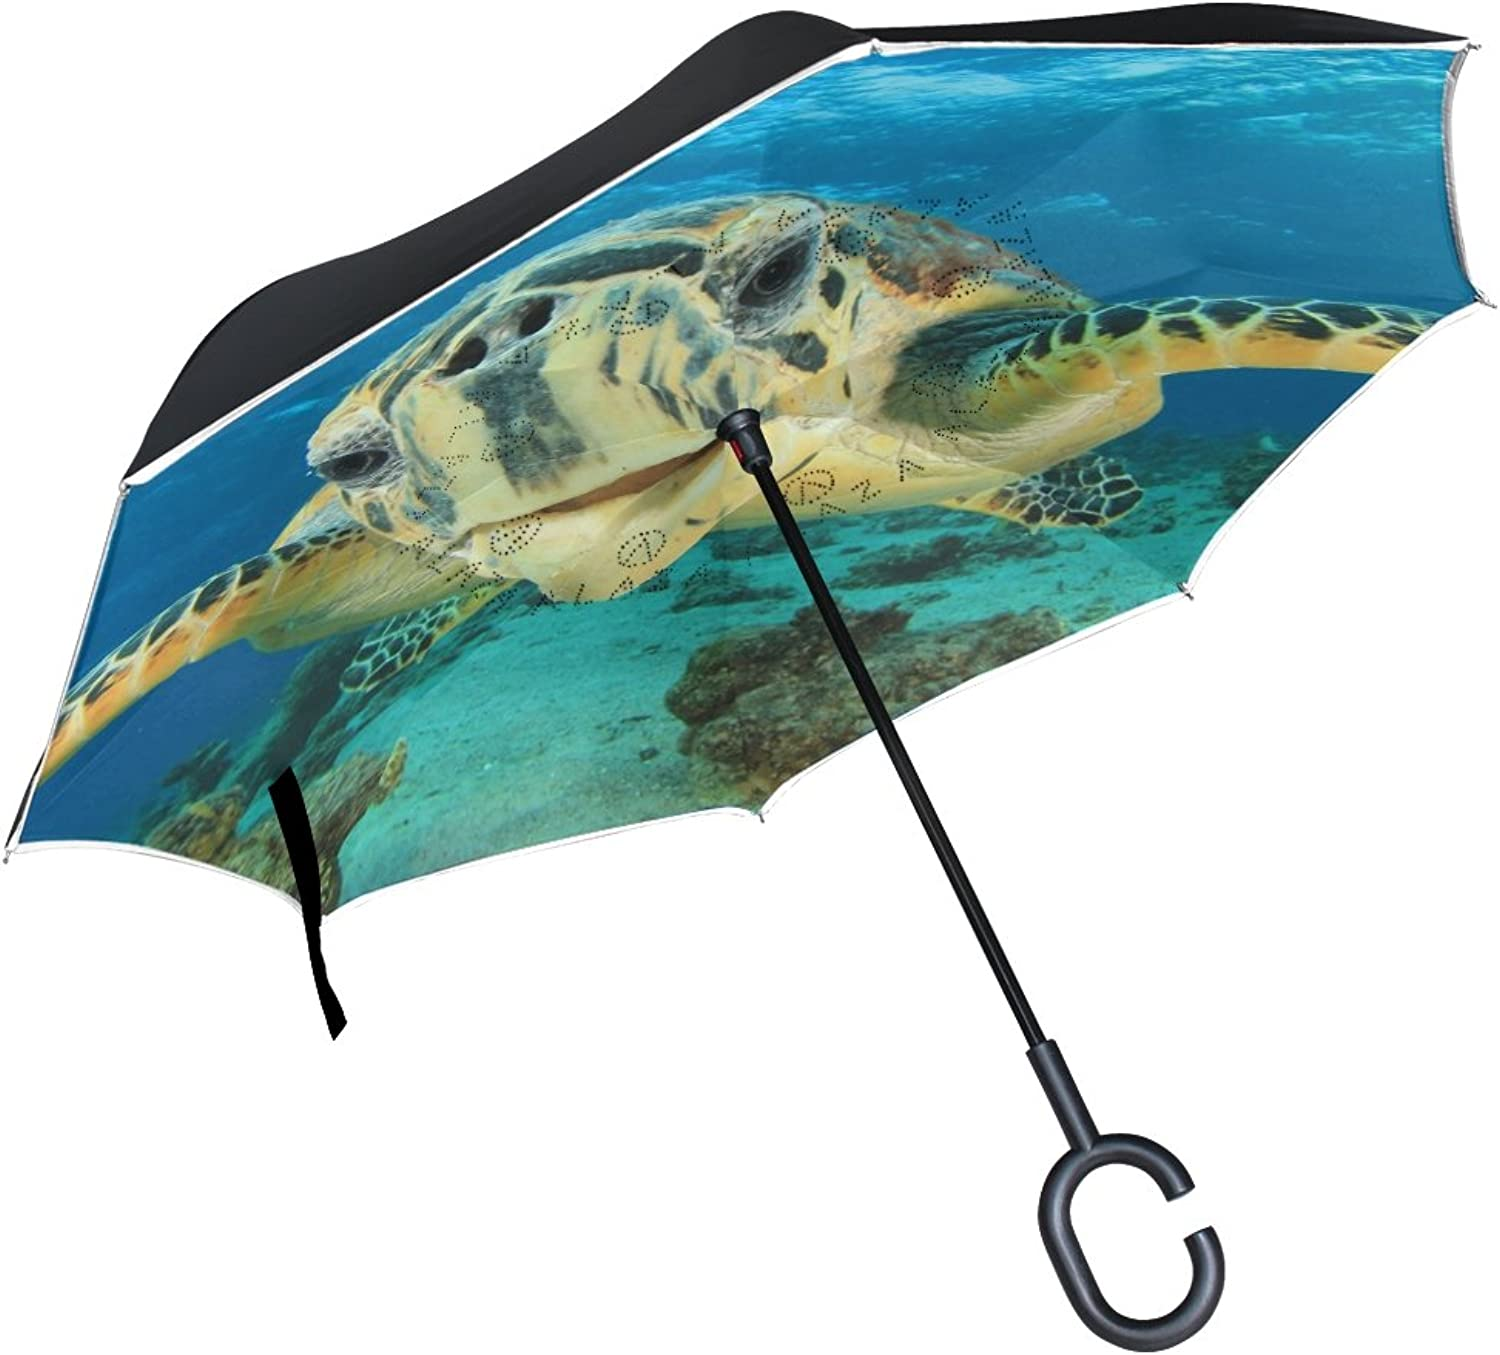 Mydaily Double Layer Ingreened Umbrella Cars Reverse Umbrella Sea Turtle Windproof UV Proof Travel Outdoor Umbrella